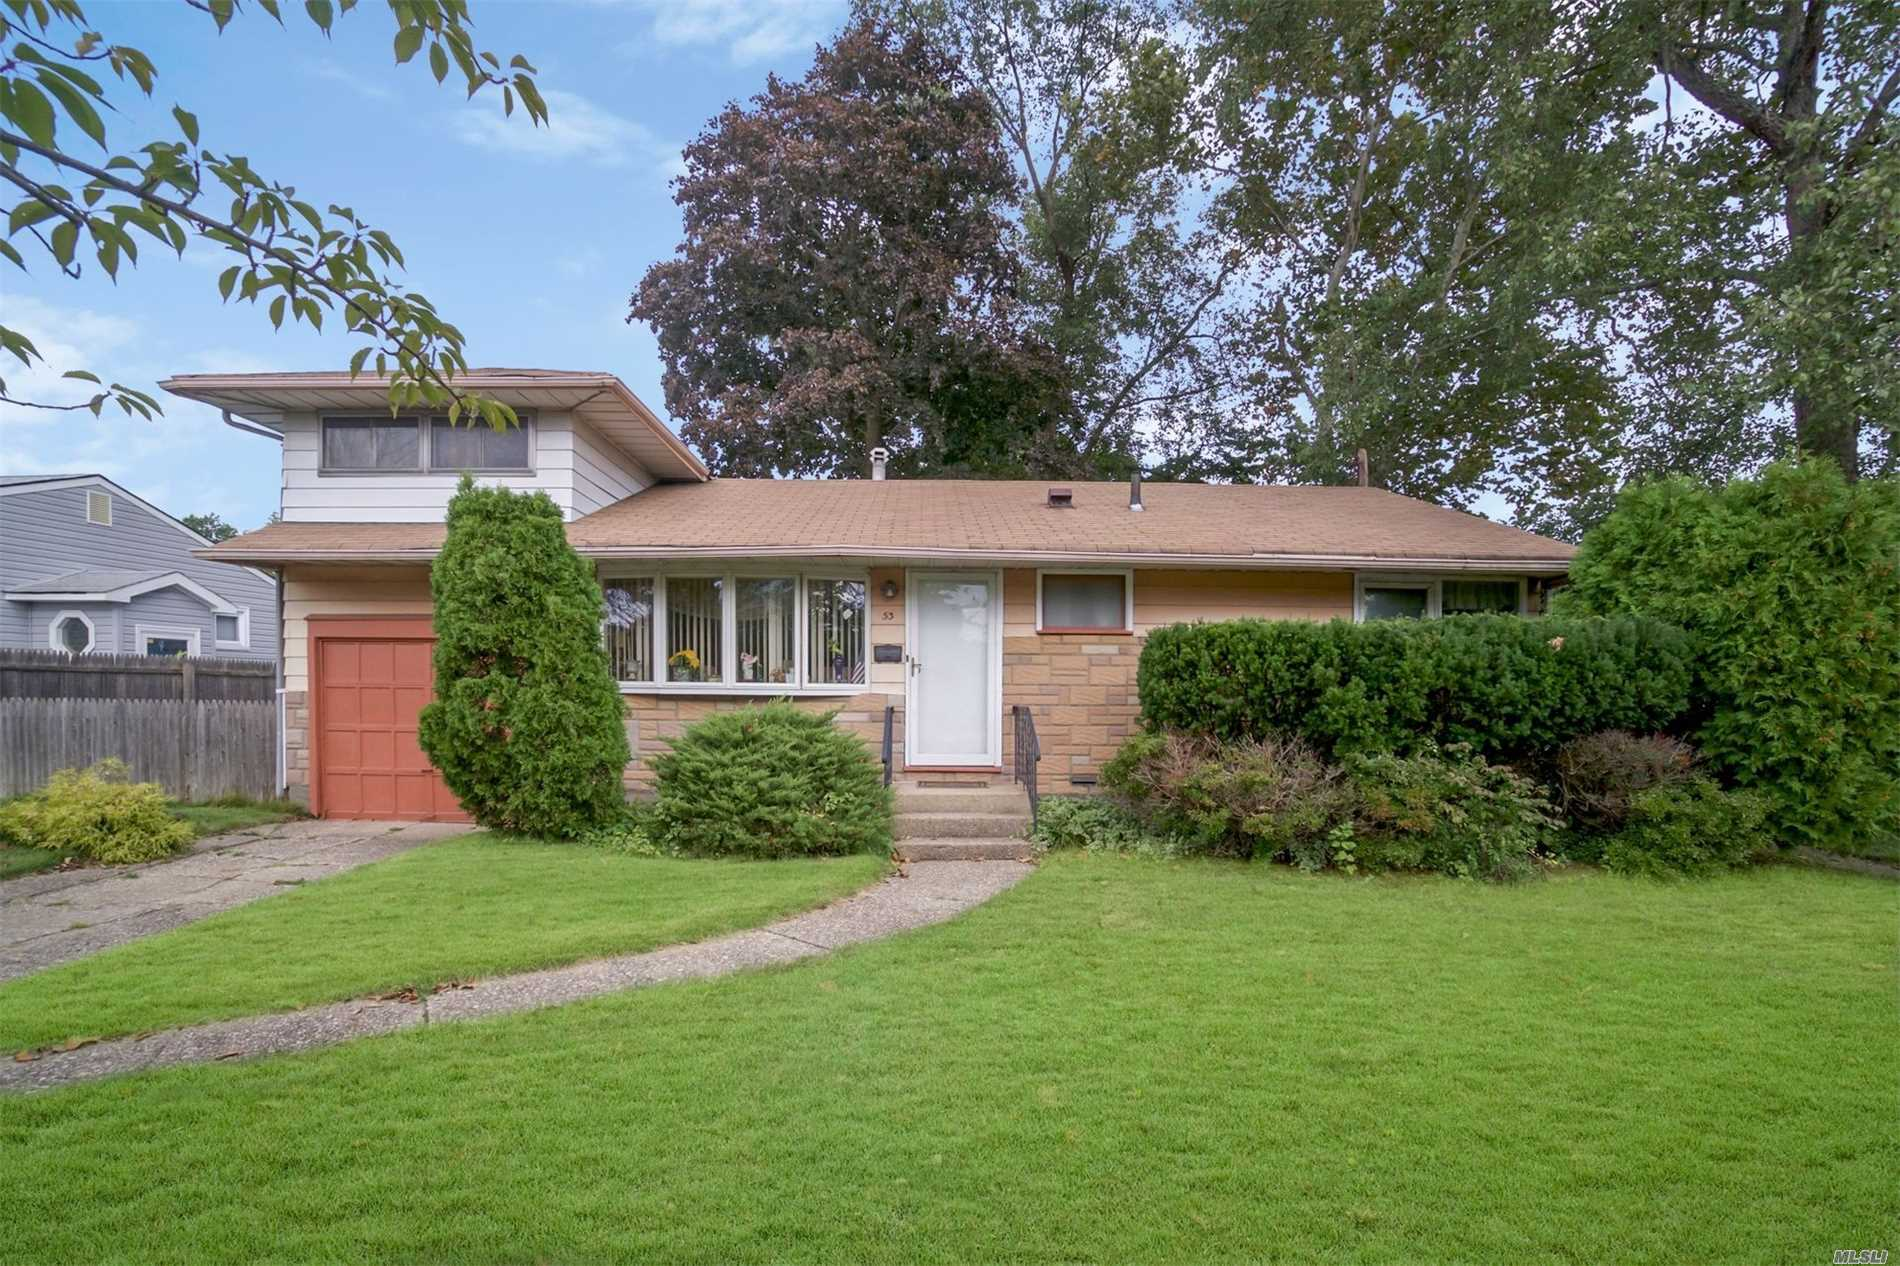 Large Expanded Ranch Featuring 3 Large Bedrooms( The Master Bed Room Is Located On The First Floor), Formal Dining Room, Living Room, Eat In Kitchen, Den, 2 Car Tandem Garage, Enclosed Porch,  Partial Finished Basement With Wet Bar, And Cedar Closets And Cedar Bays. Lots Of Storage , Updated Gas Burner And Hot Water Heater Hardwood Floors On First Floor , Picture Of Floors Under Carpet Included In Pictures On The Listing.. Low Taxes.